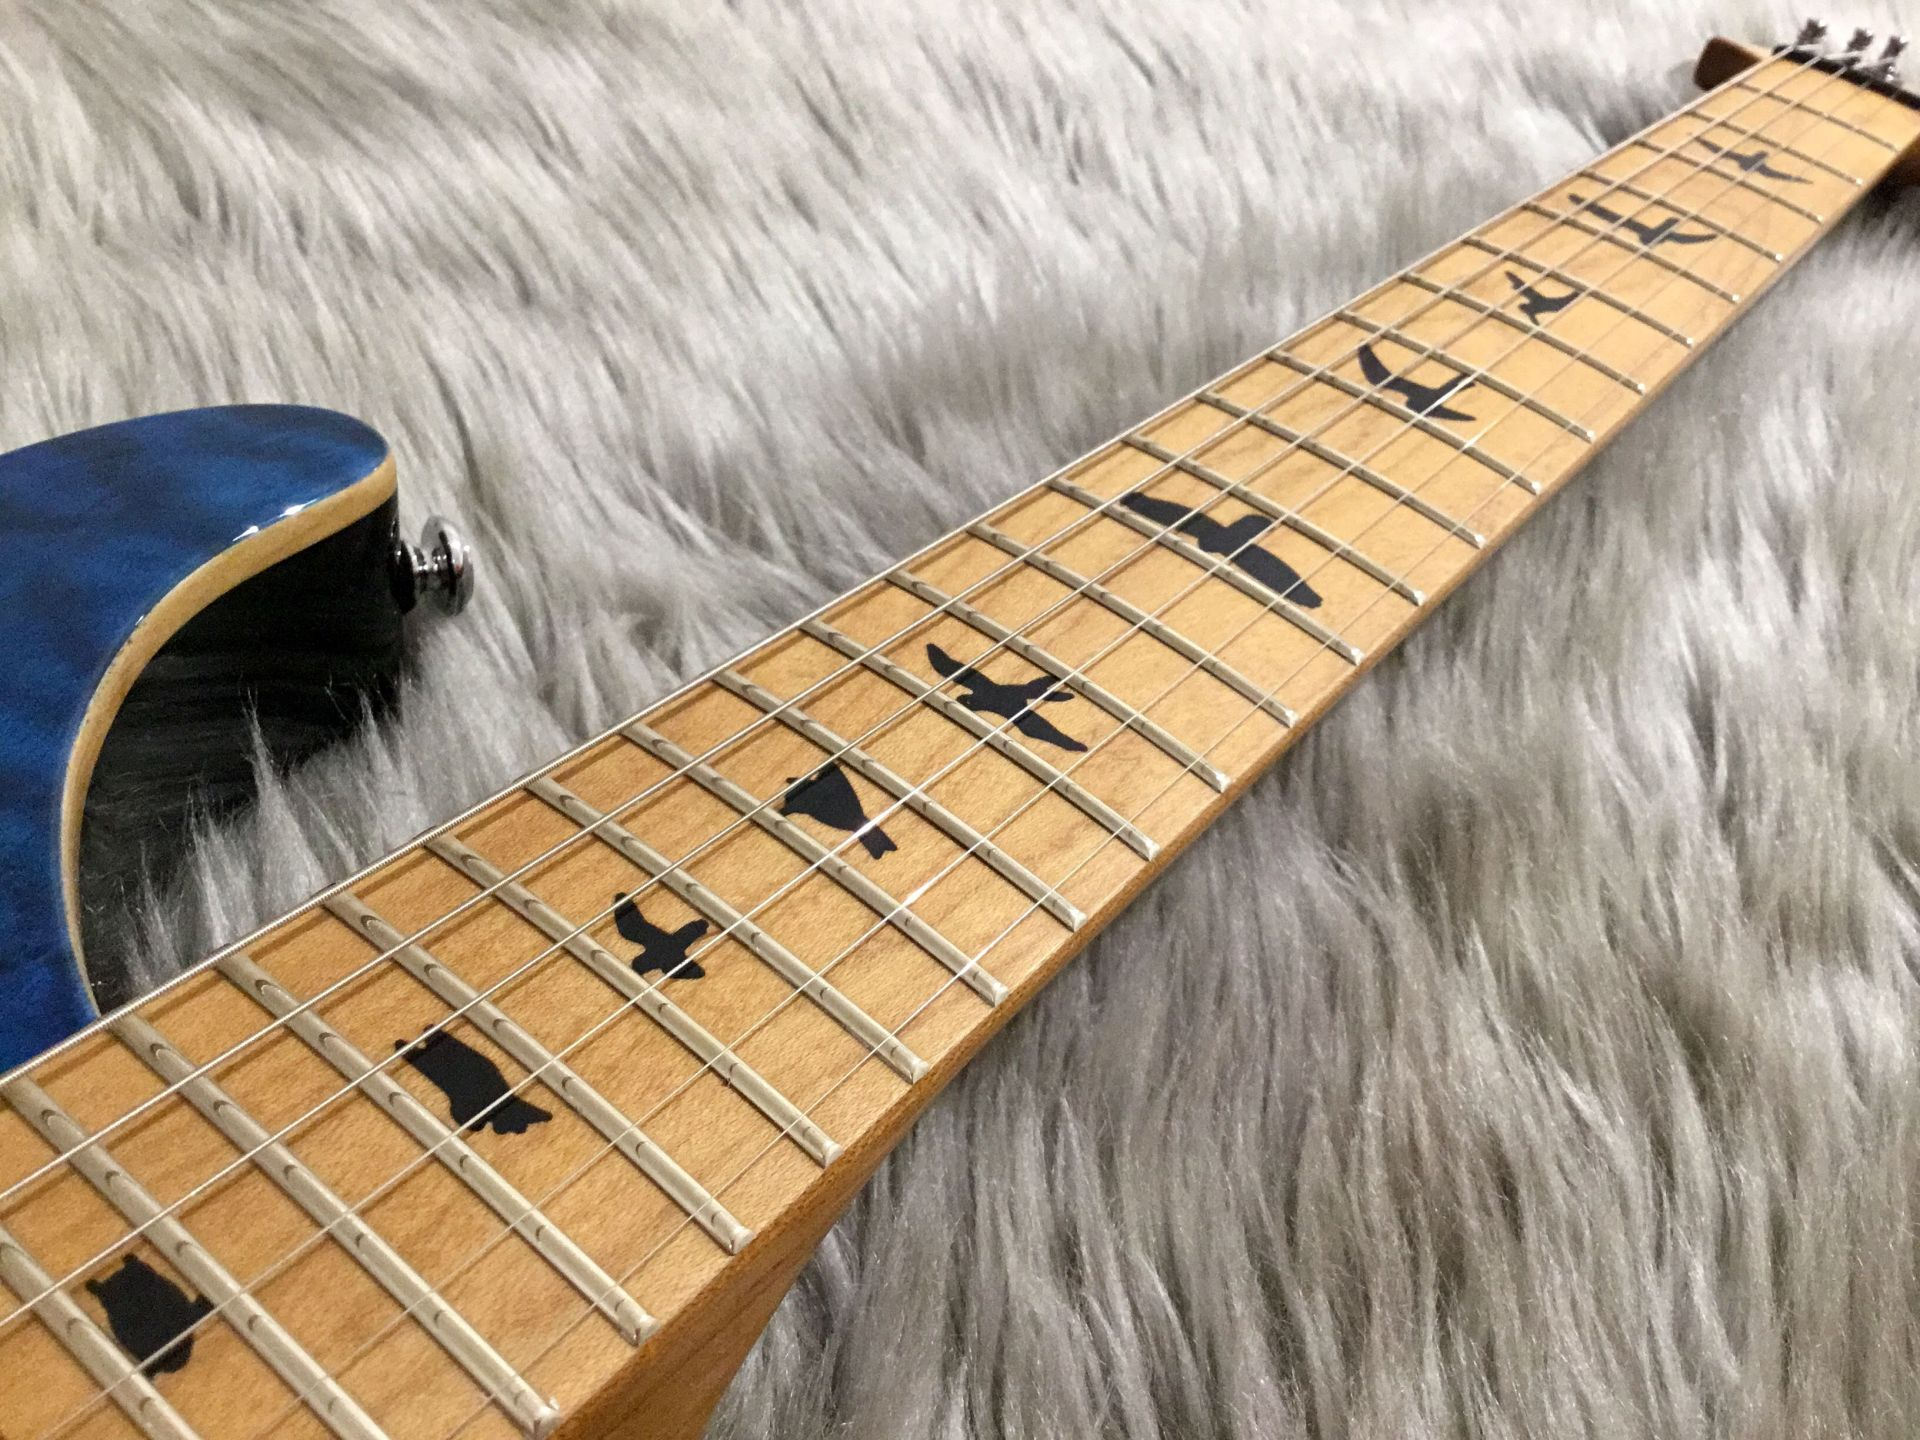 SE CU24 RSTM SN Custom 24 Roasted Maple Limitedの全体画像(縦)